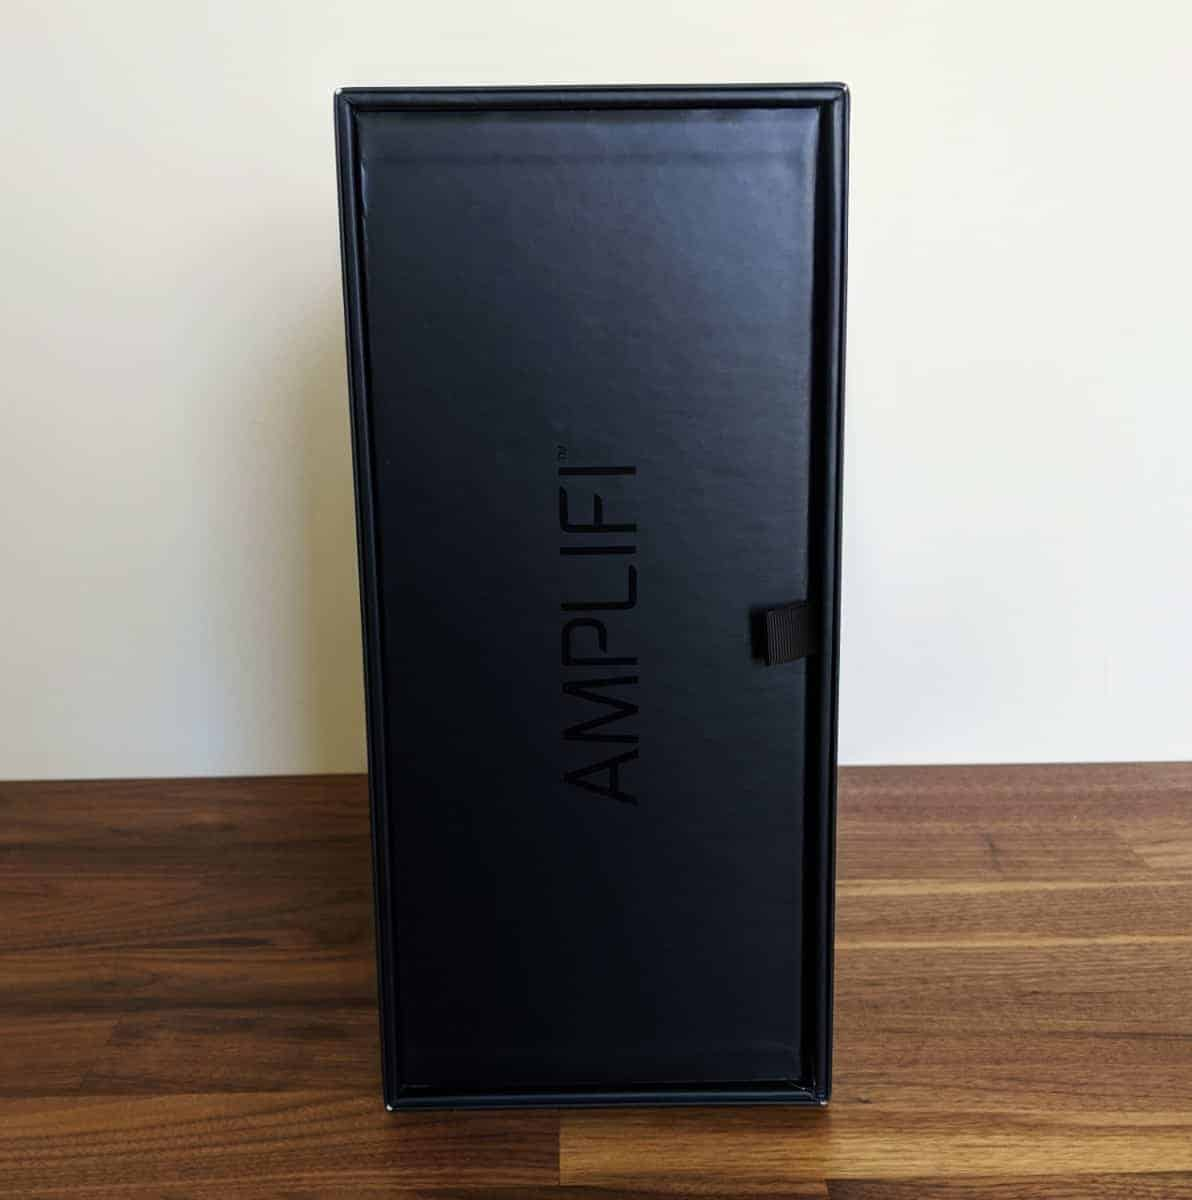 AmplifiHD-Screens-29 Amplifi HD Review